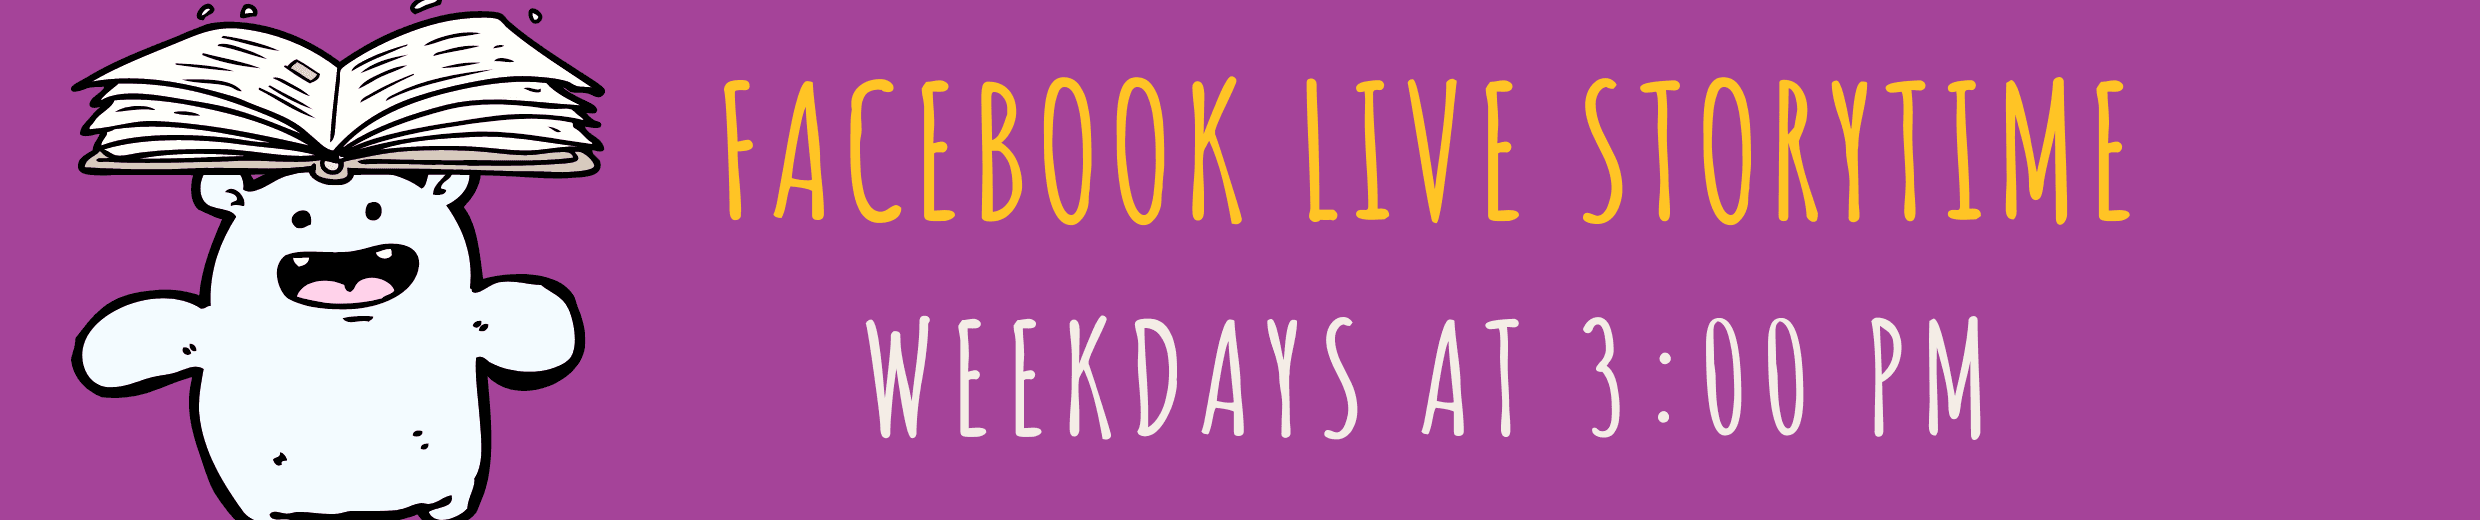 web facebook storytime daily on facebook live at 3 PM